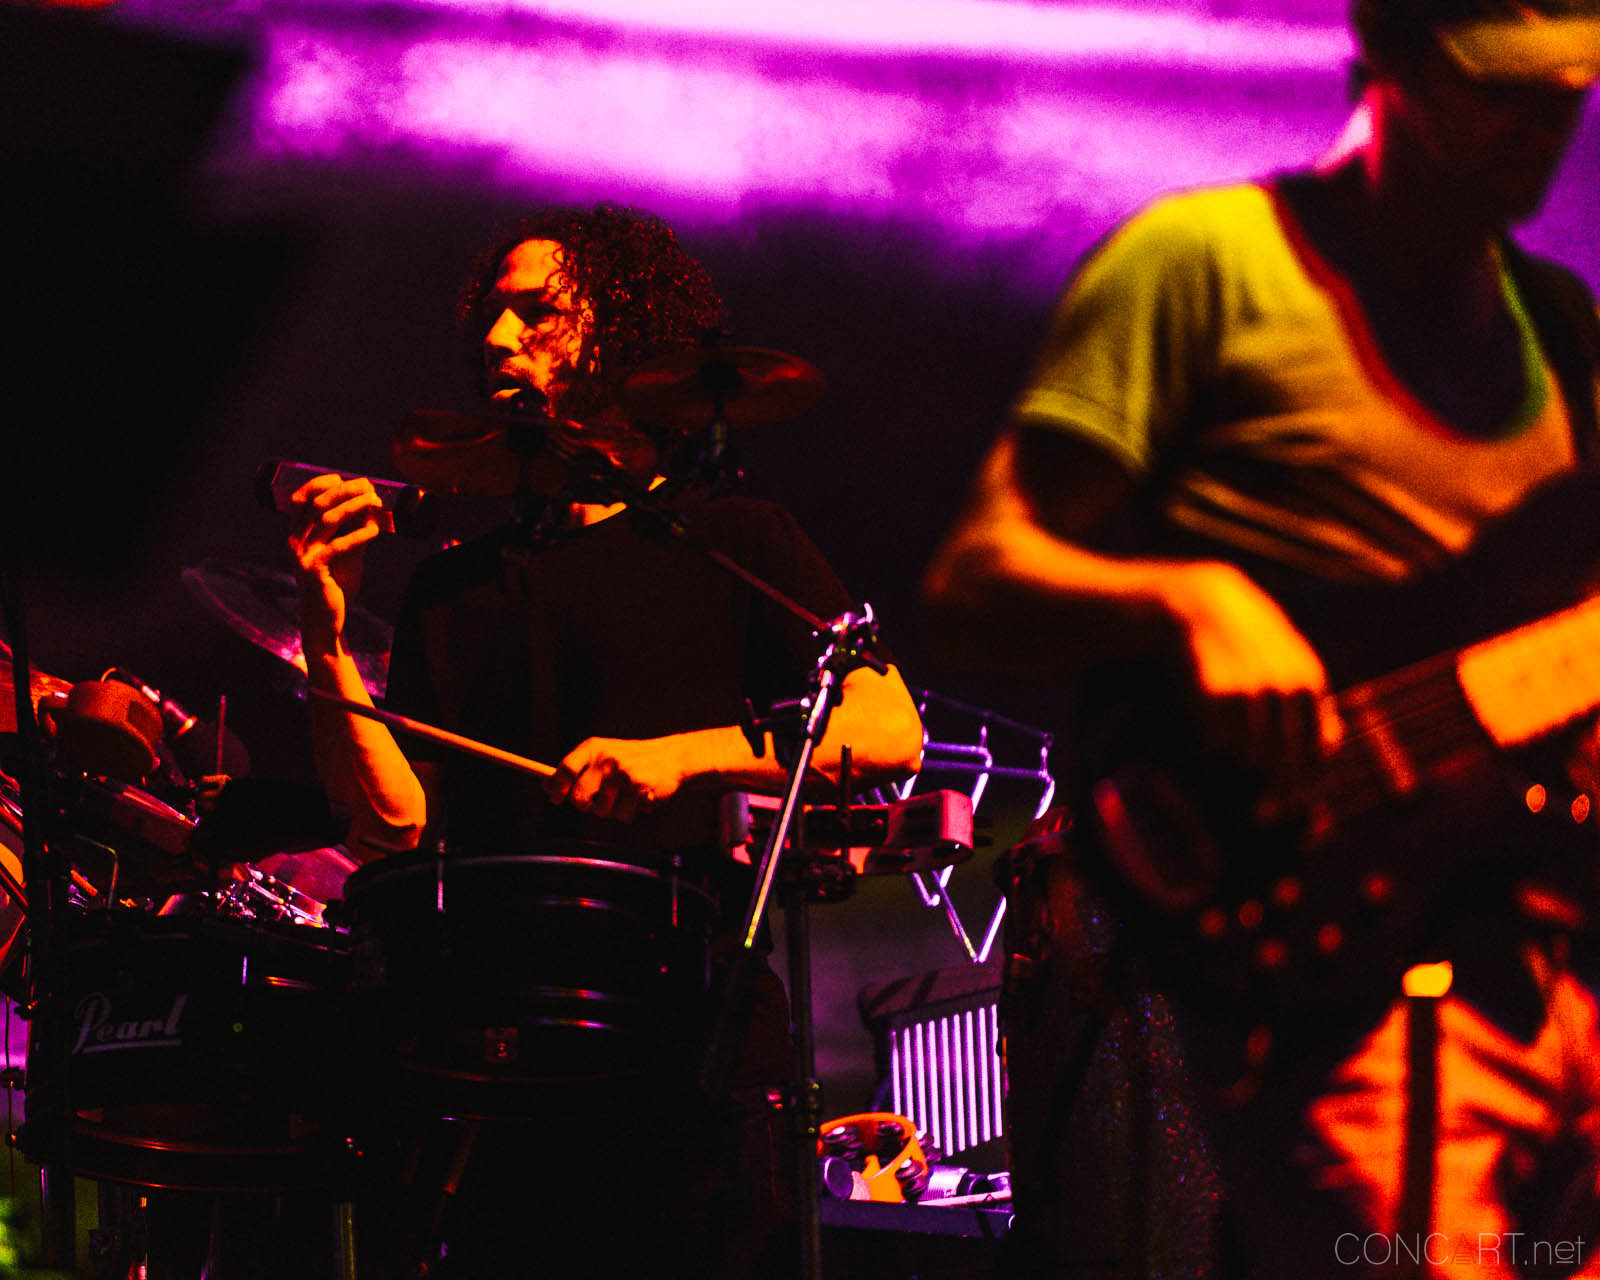 umphreys_mcgee_live_the_lawn_indianapolis_2013-25